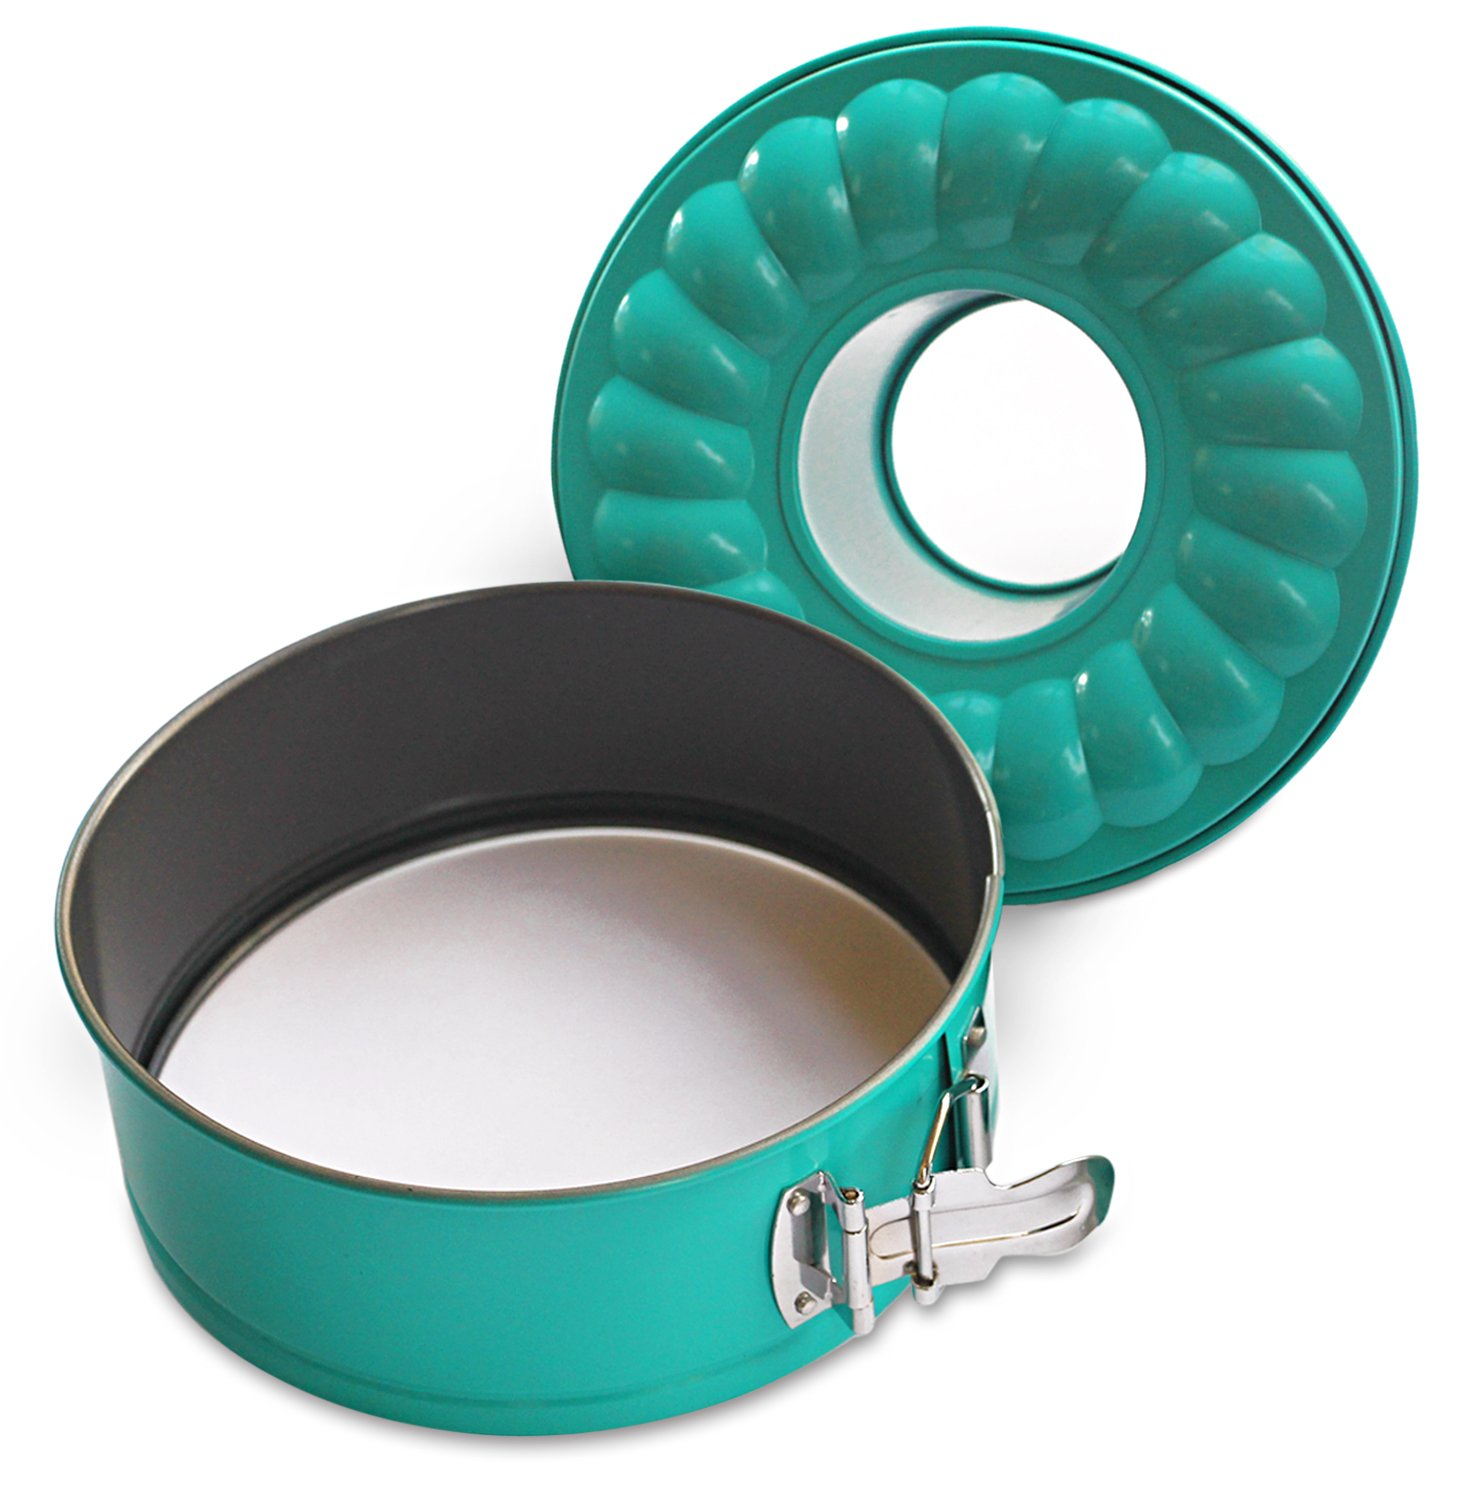 7' Inch Non-stick Springform Bundt Pan